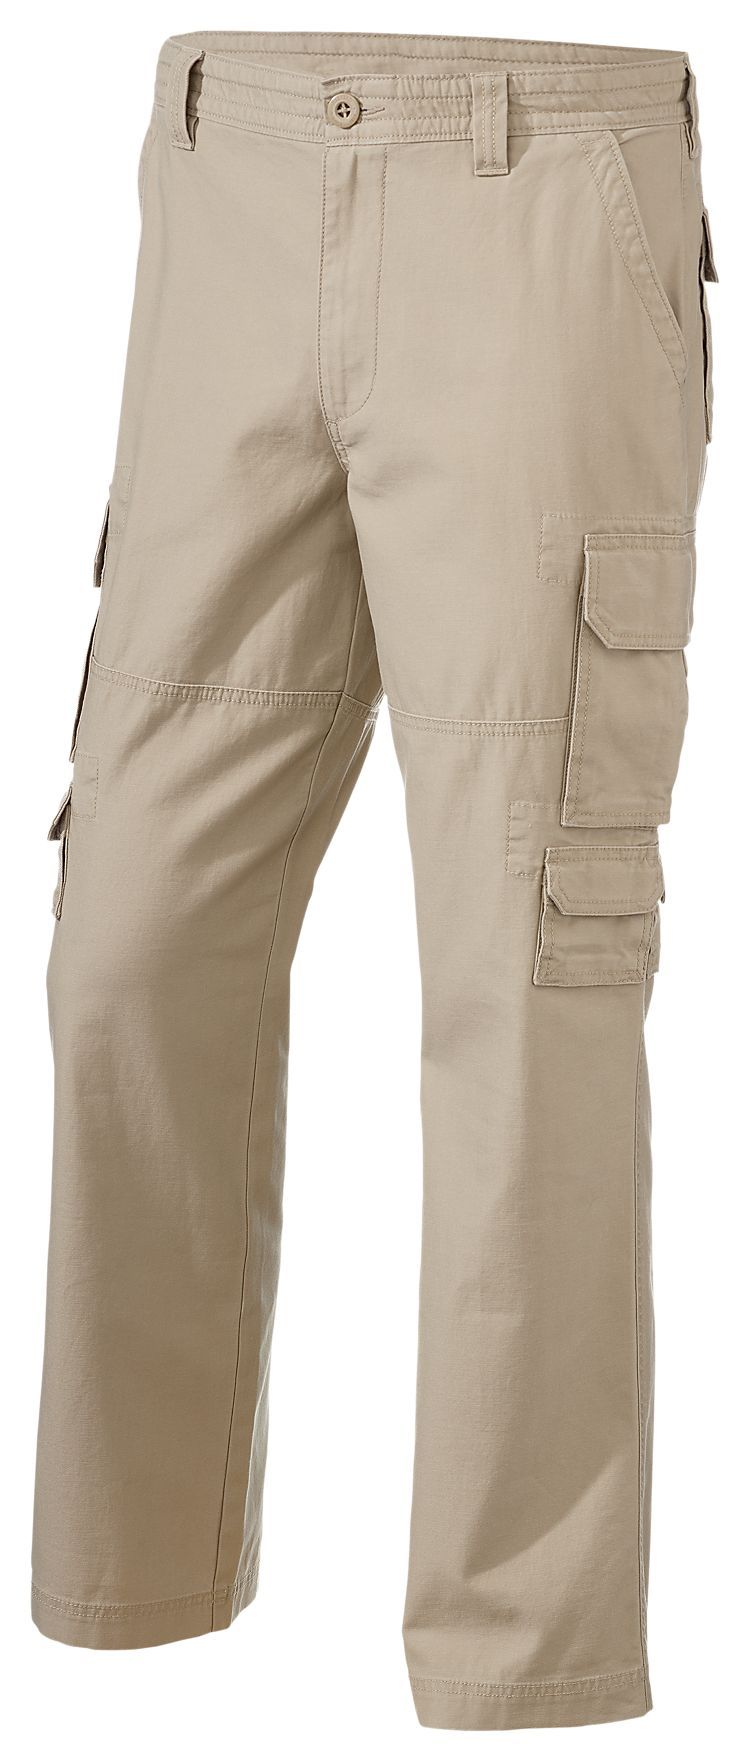 RedHead Trailhead Twill Cargo Pants for Men | Bass Pro Shops: The ...